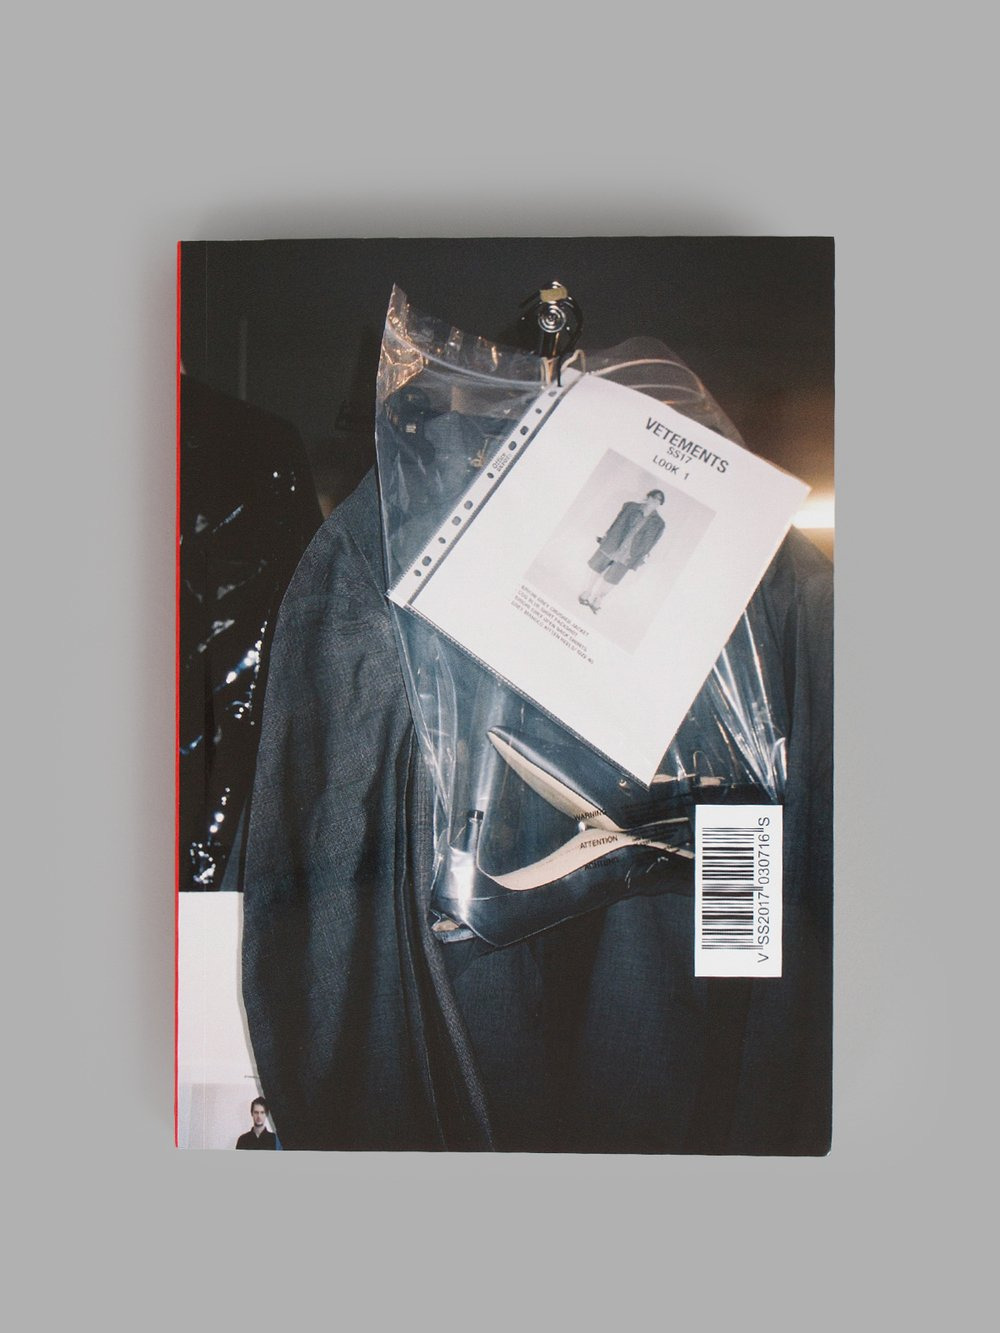 Libro vetements 12 02 28 10014